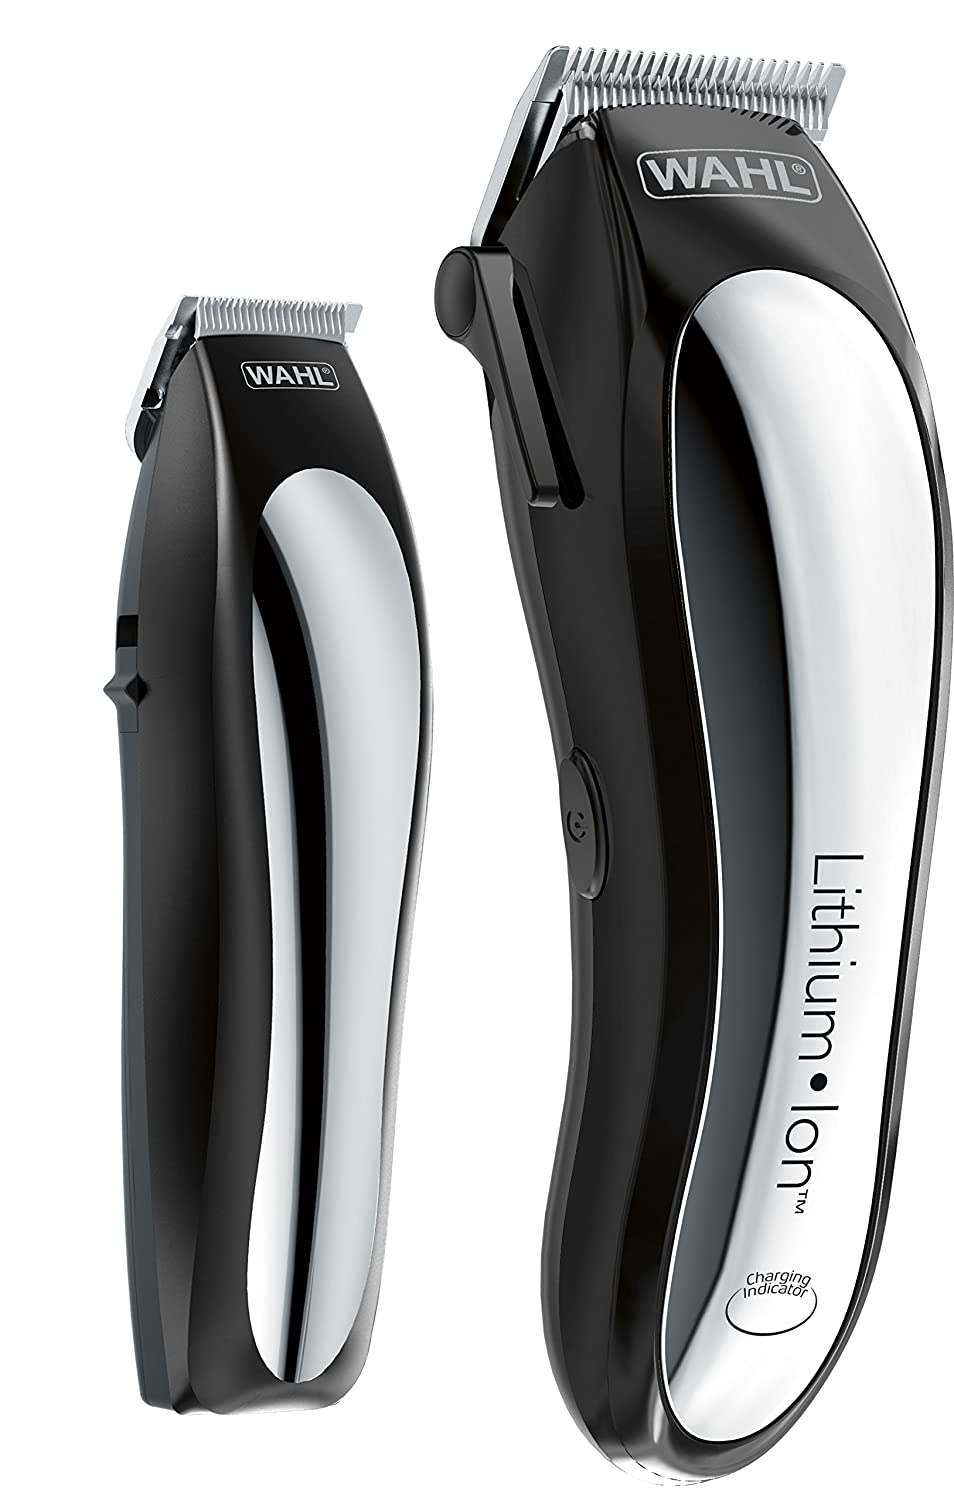 Wahl 79600-2116 Professional Lithium Ion Hair Clippers (Mains/Battery) Includes Precision Trimmer